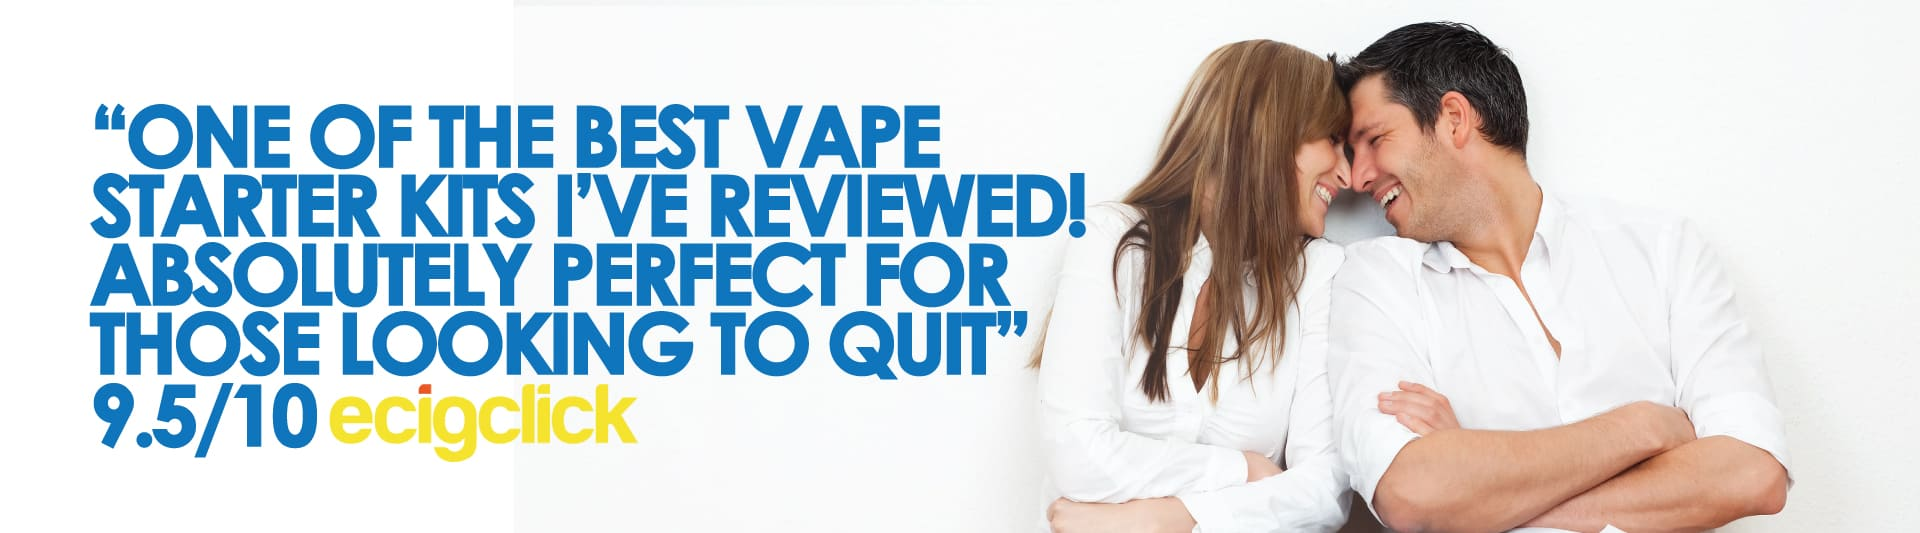 one of the leading e-cigarette review sites ECigClick says that the SMOKO VAPE is